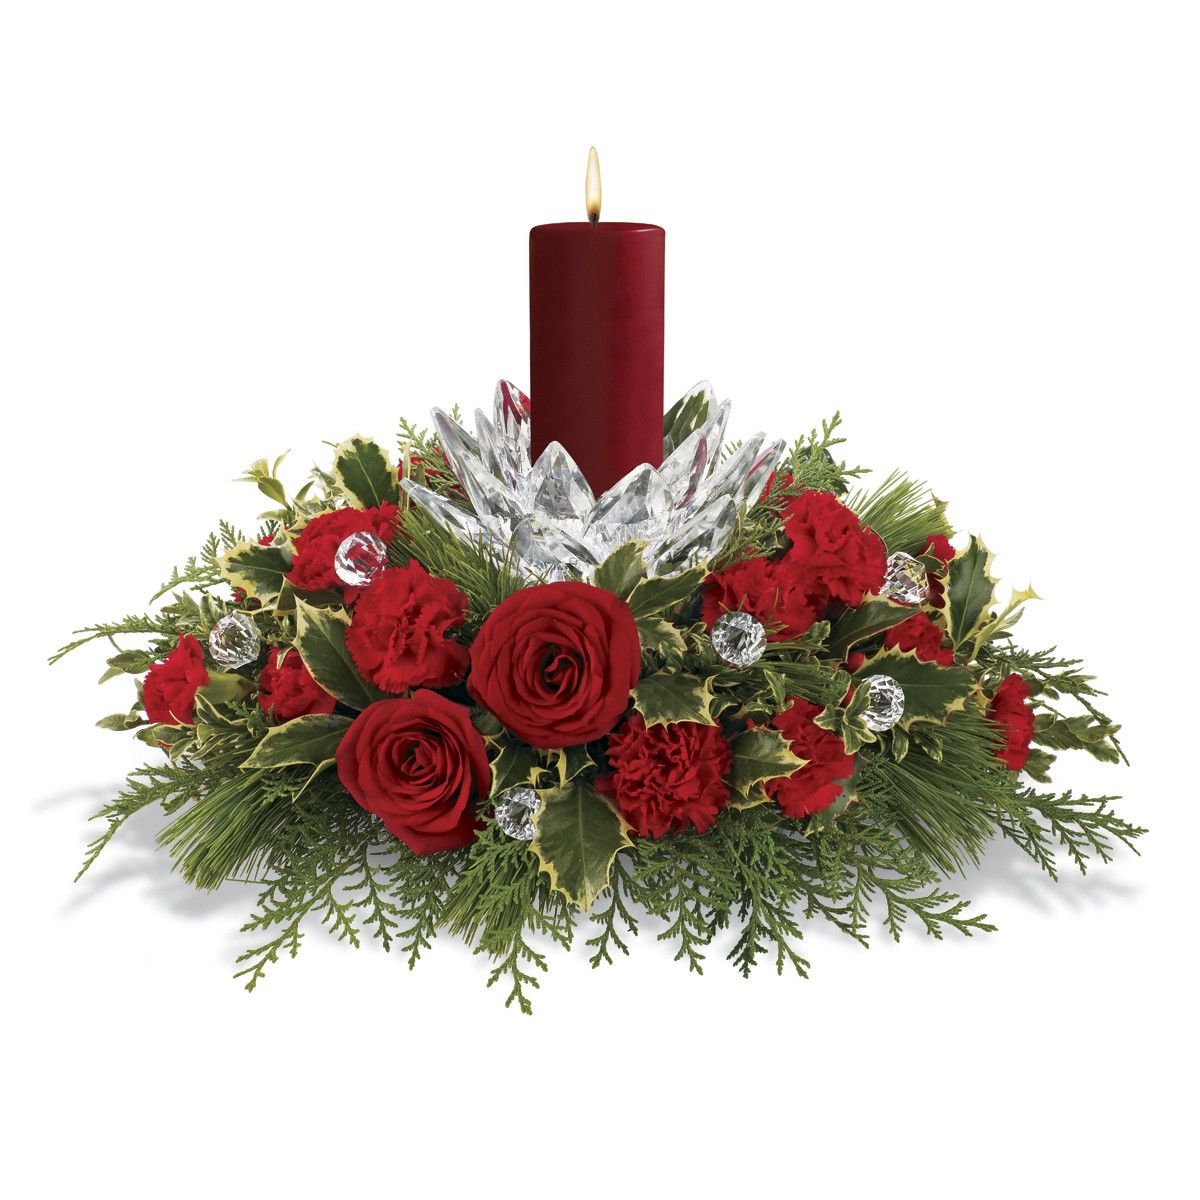 Christmas Flower Images  Give Holiday Cheer with Designer Floral Arrangements and